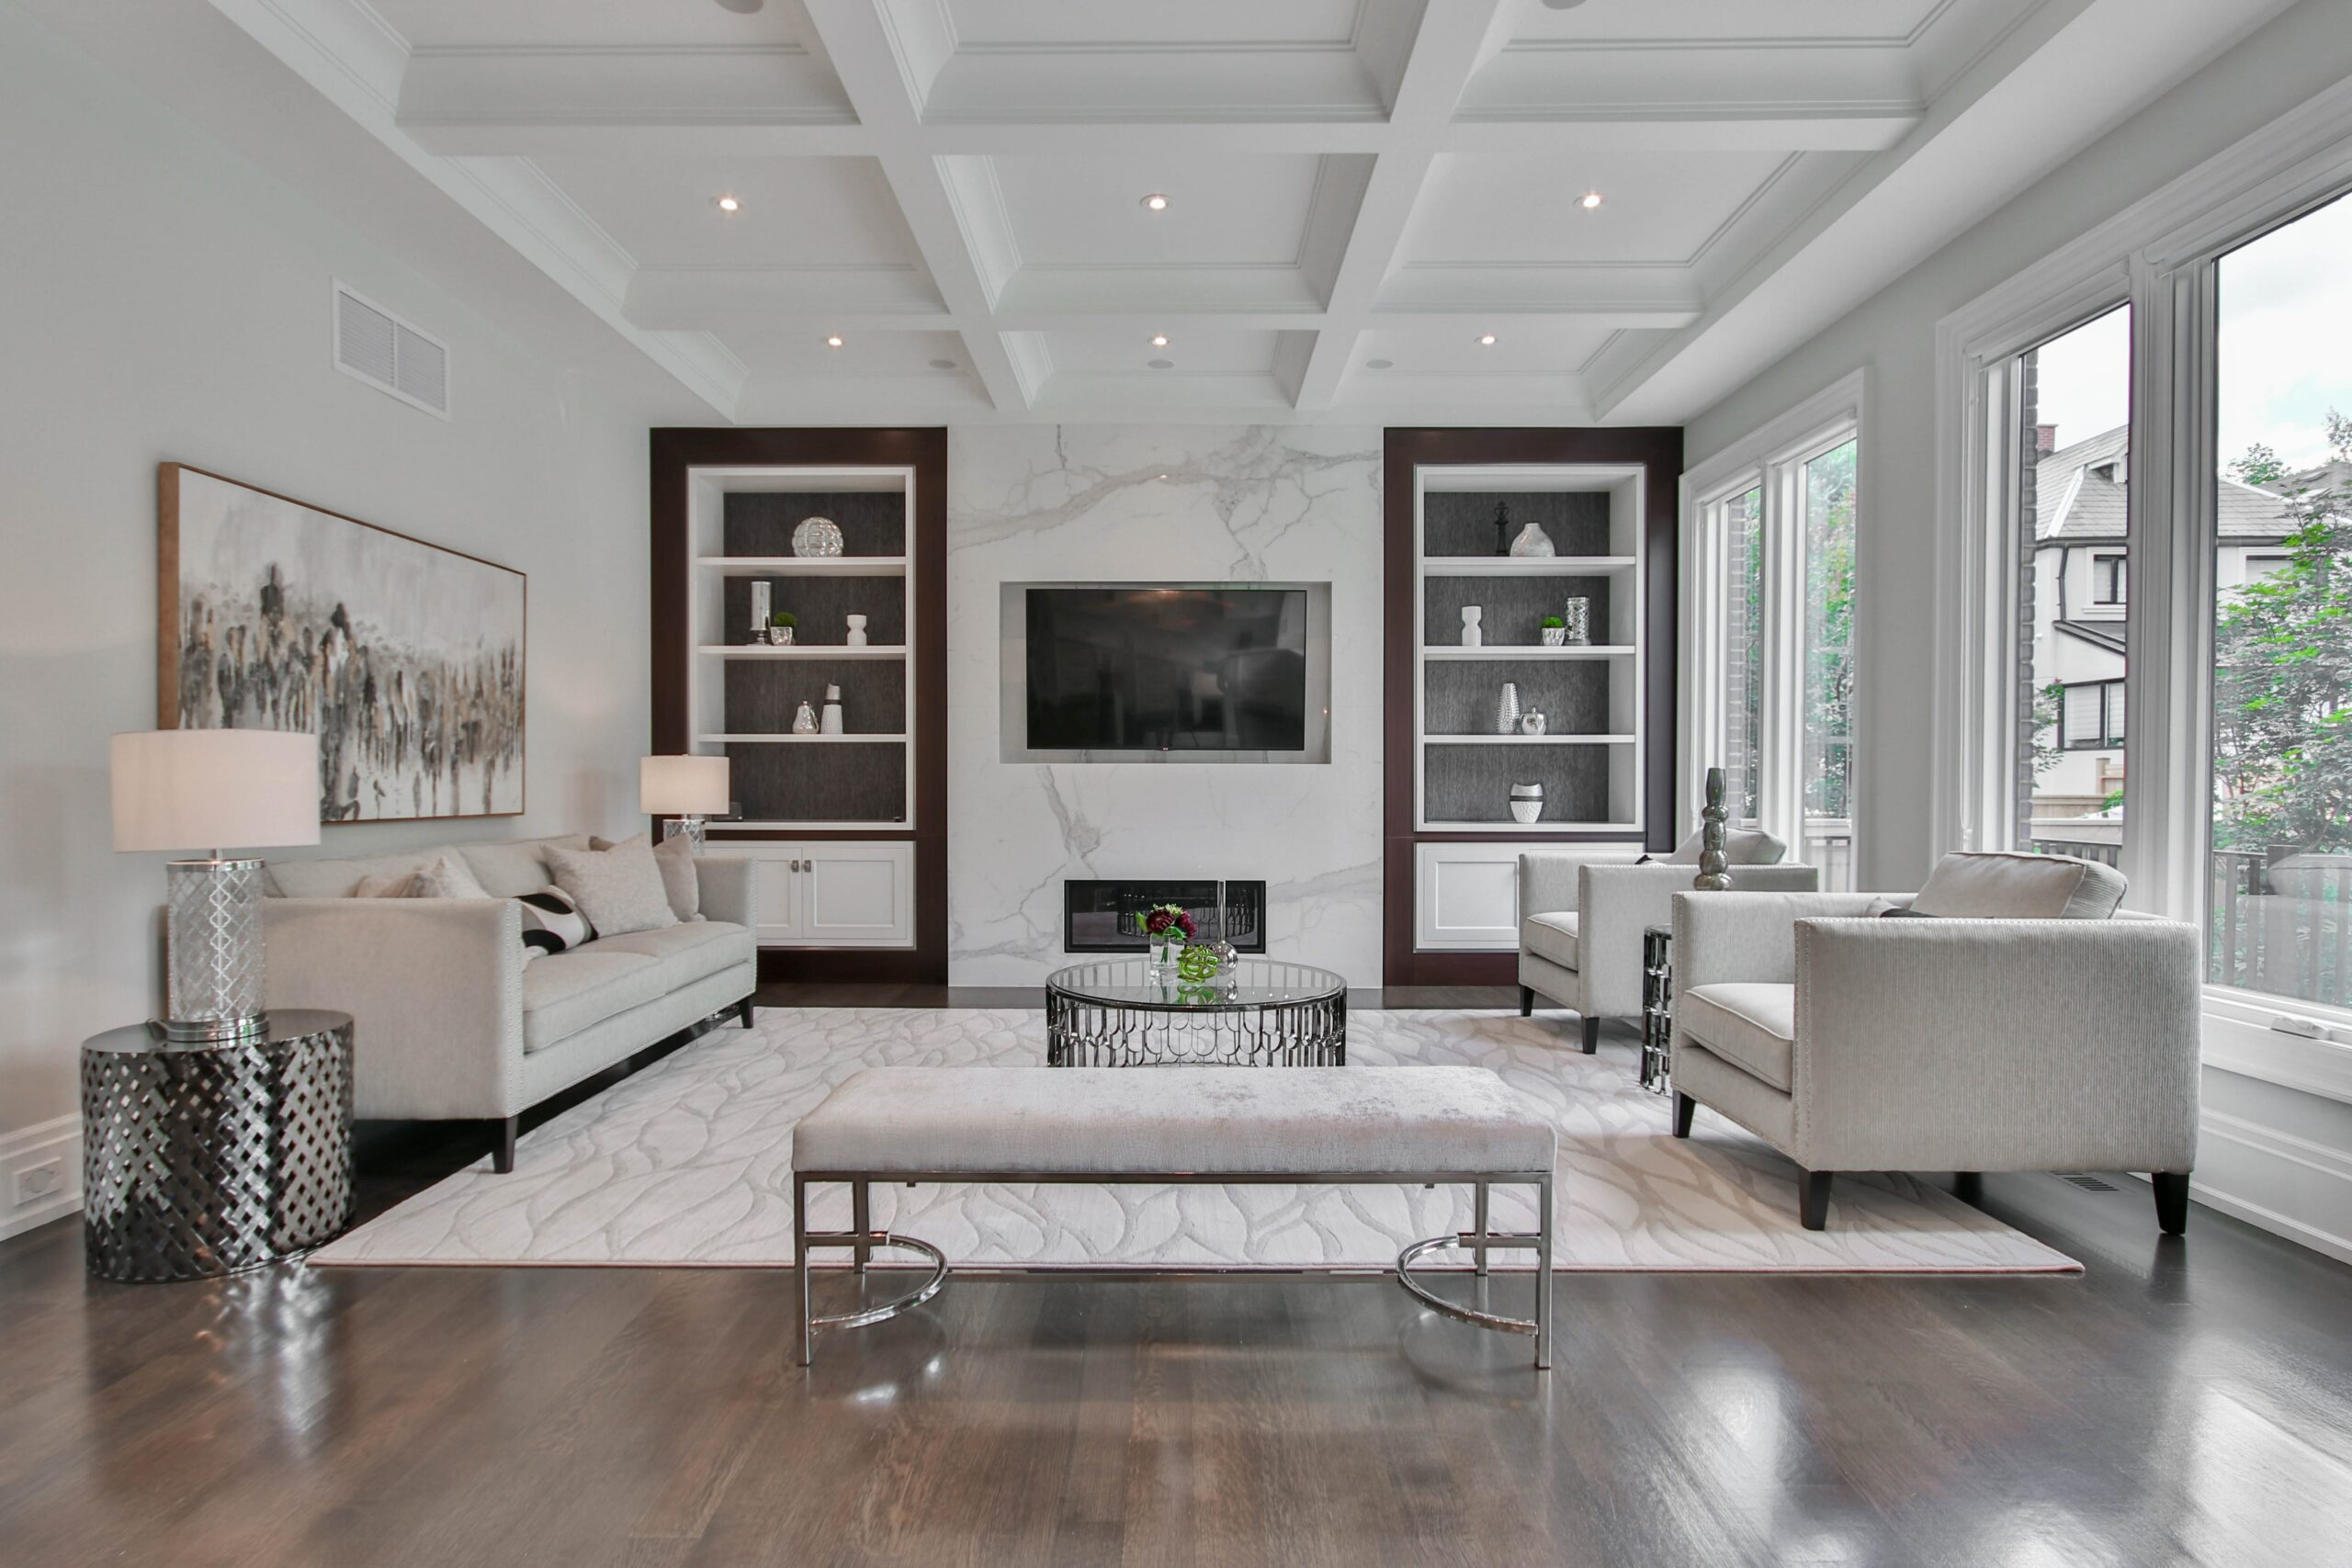 Media walls with fireplaces have become a major interior design trend in recent years